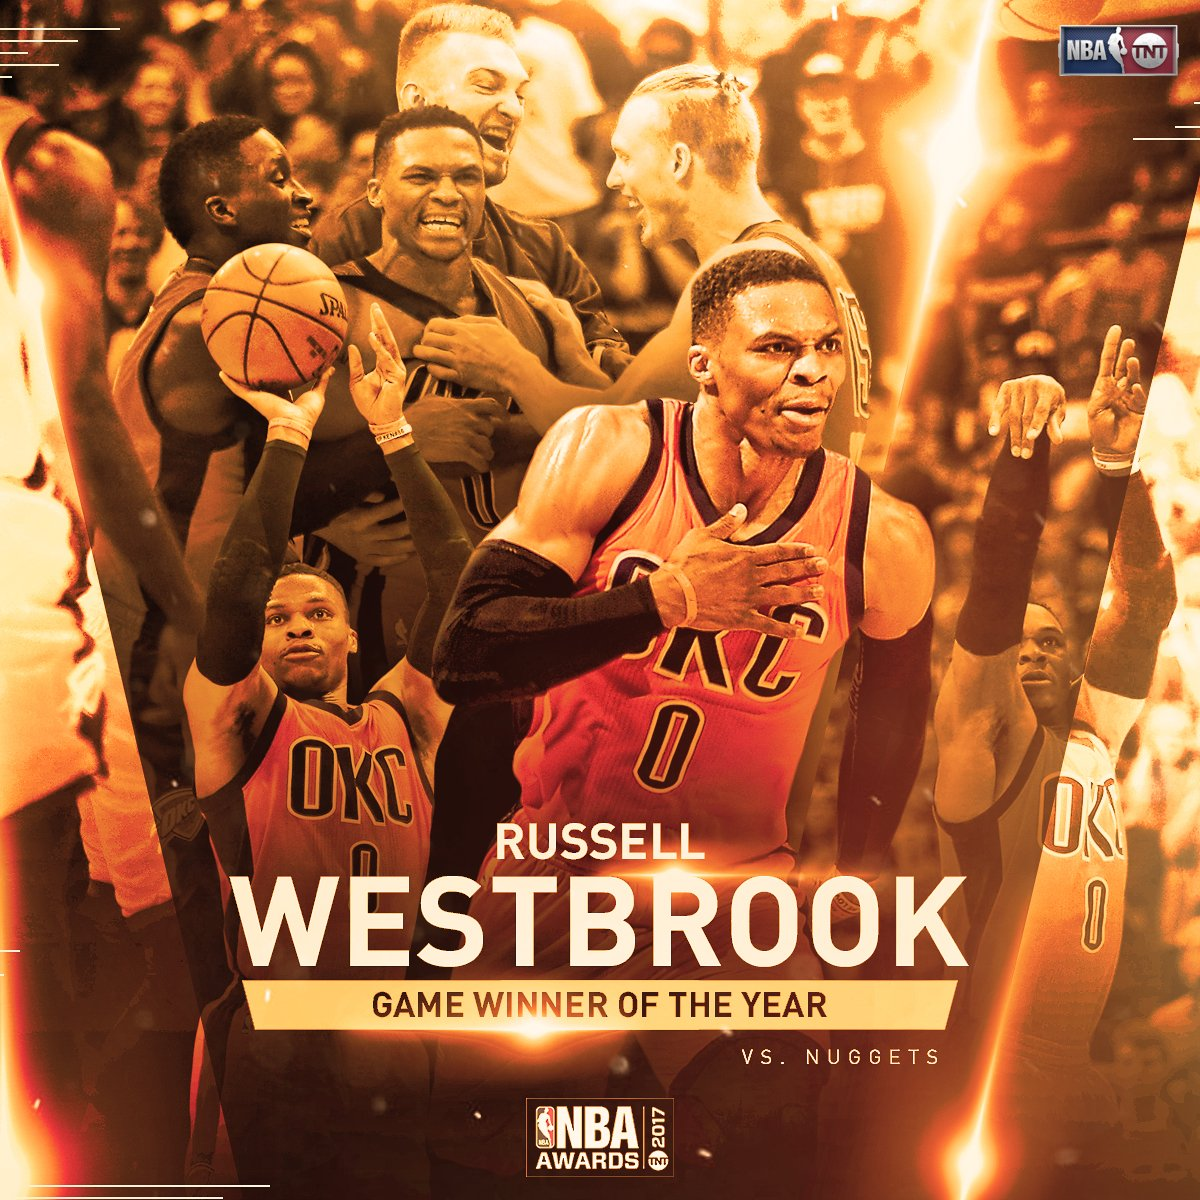 Russell Westbrook wins the fan vote for Game Winner of the Year! #NBAA...